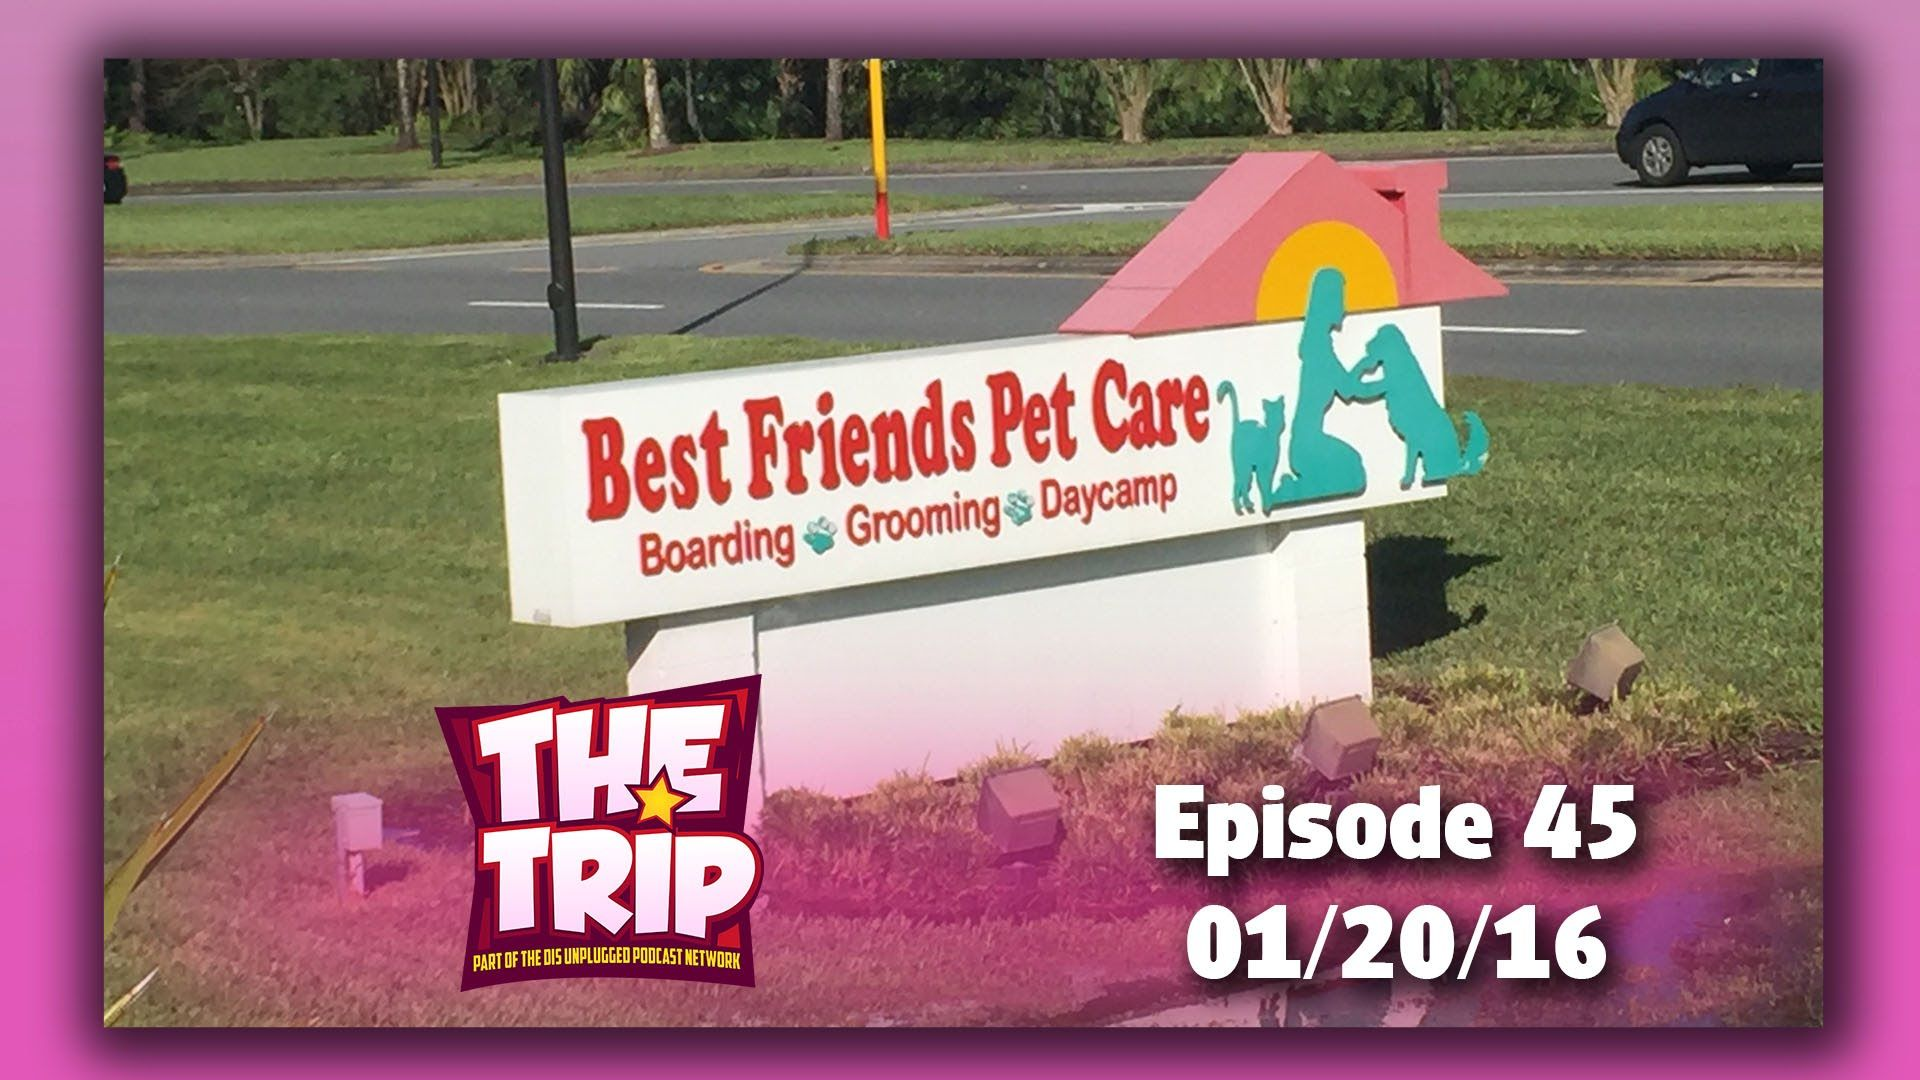 In this week's show, we discuss Best Friends Pet Care - the kennel on Walt Disney World Resort property.